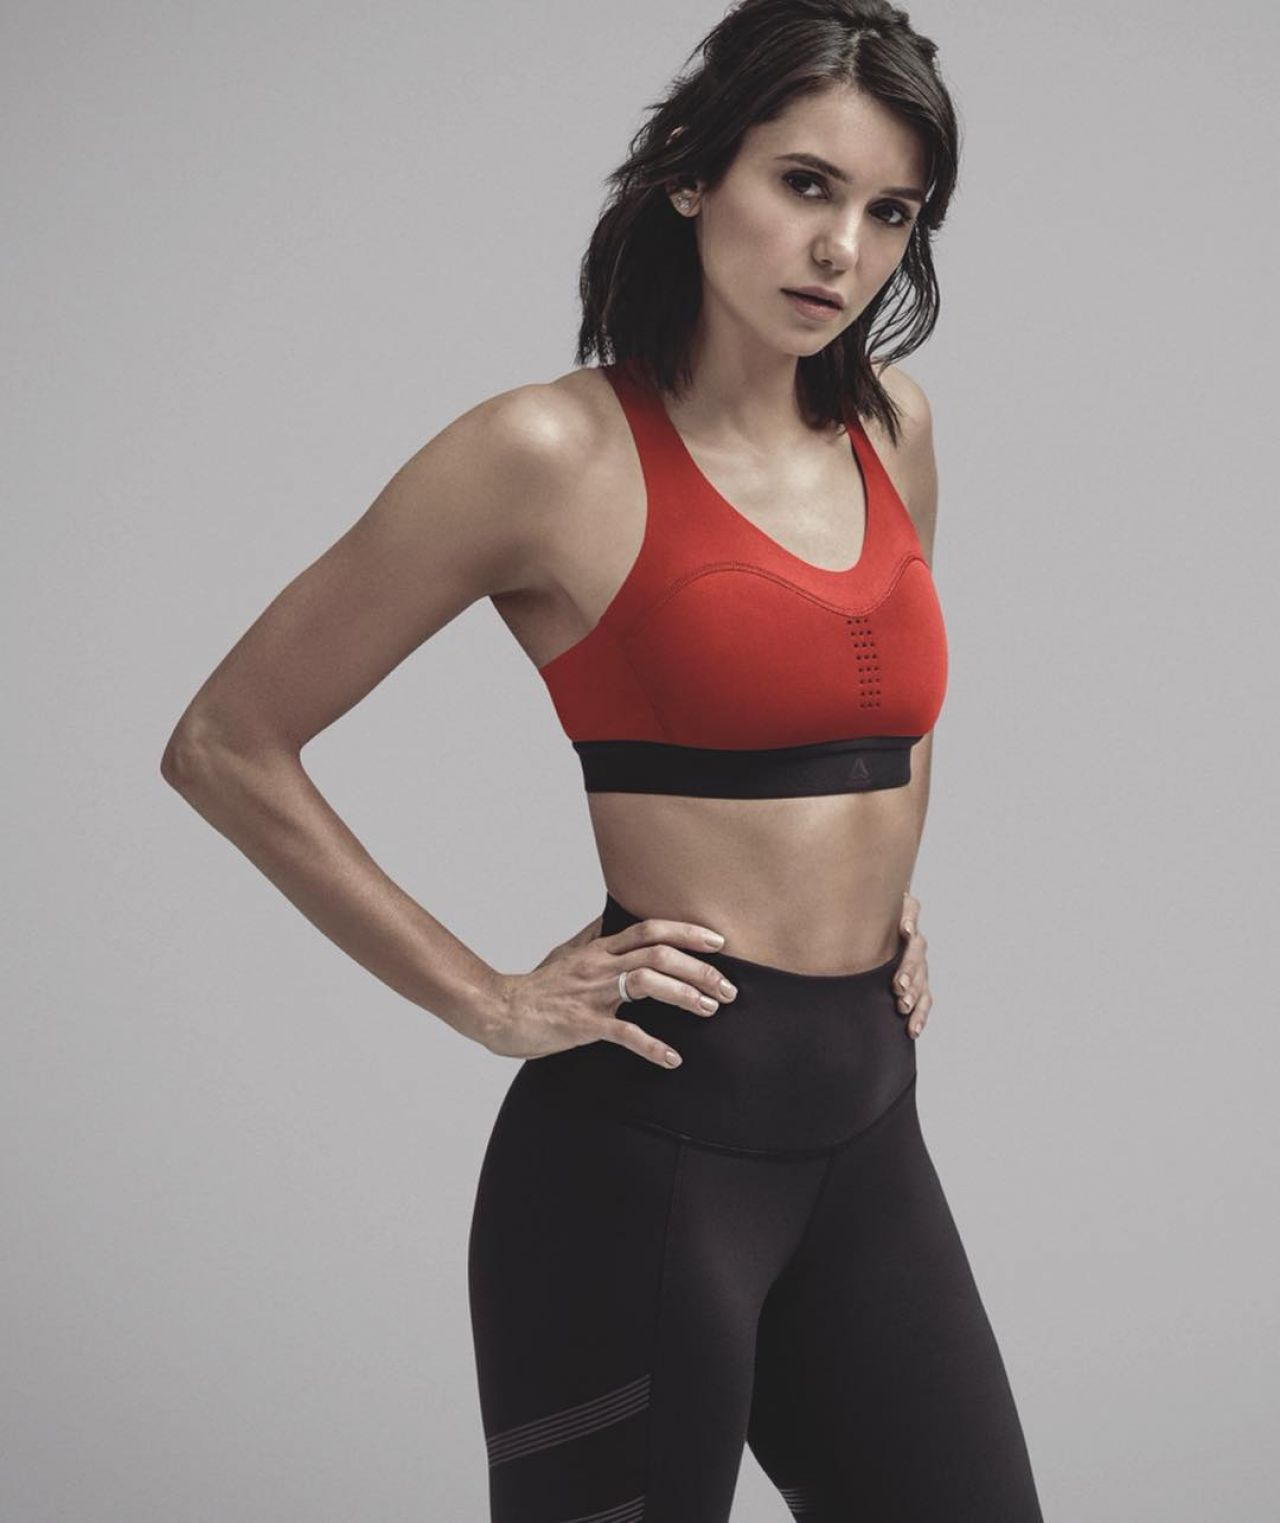 Get Yours Today At Ninas South Abington: Reebok Women 2019 Campaign